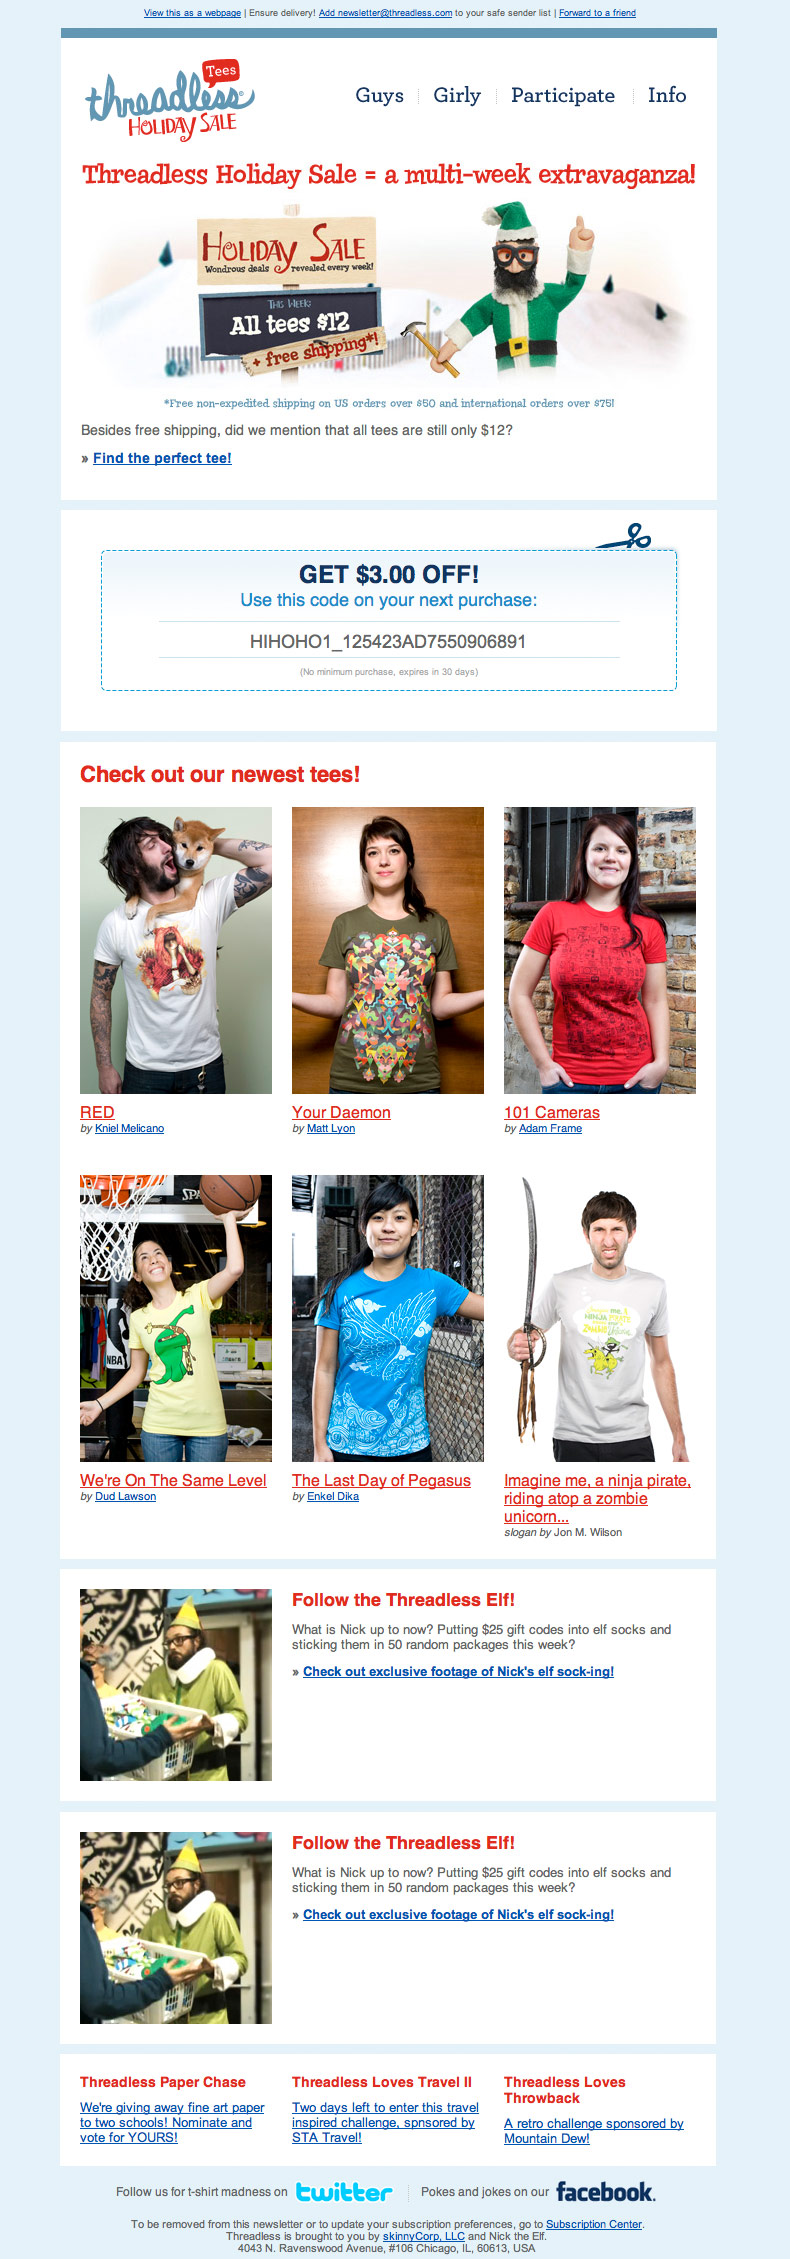 Threadless Holiday Sale 2010